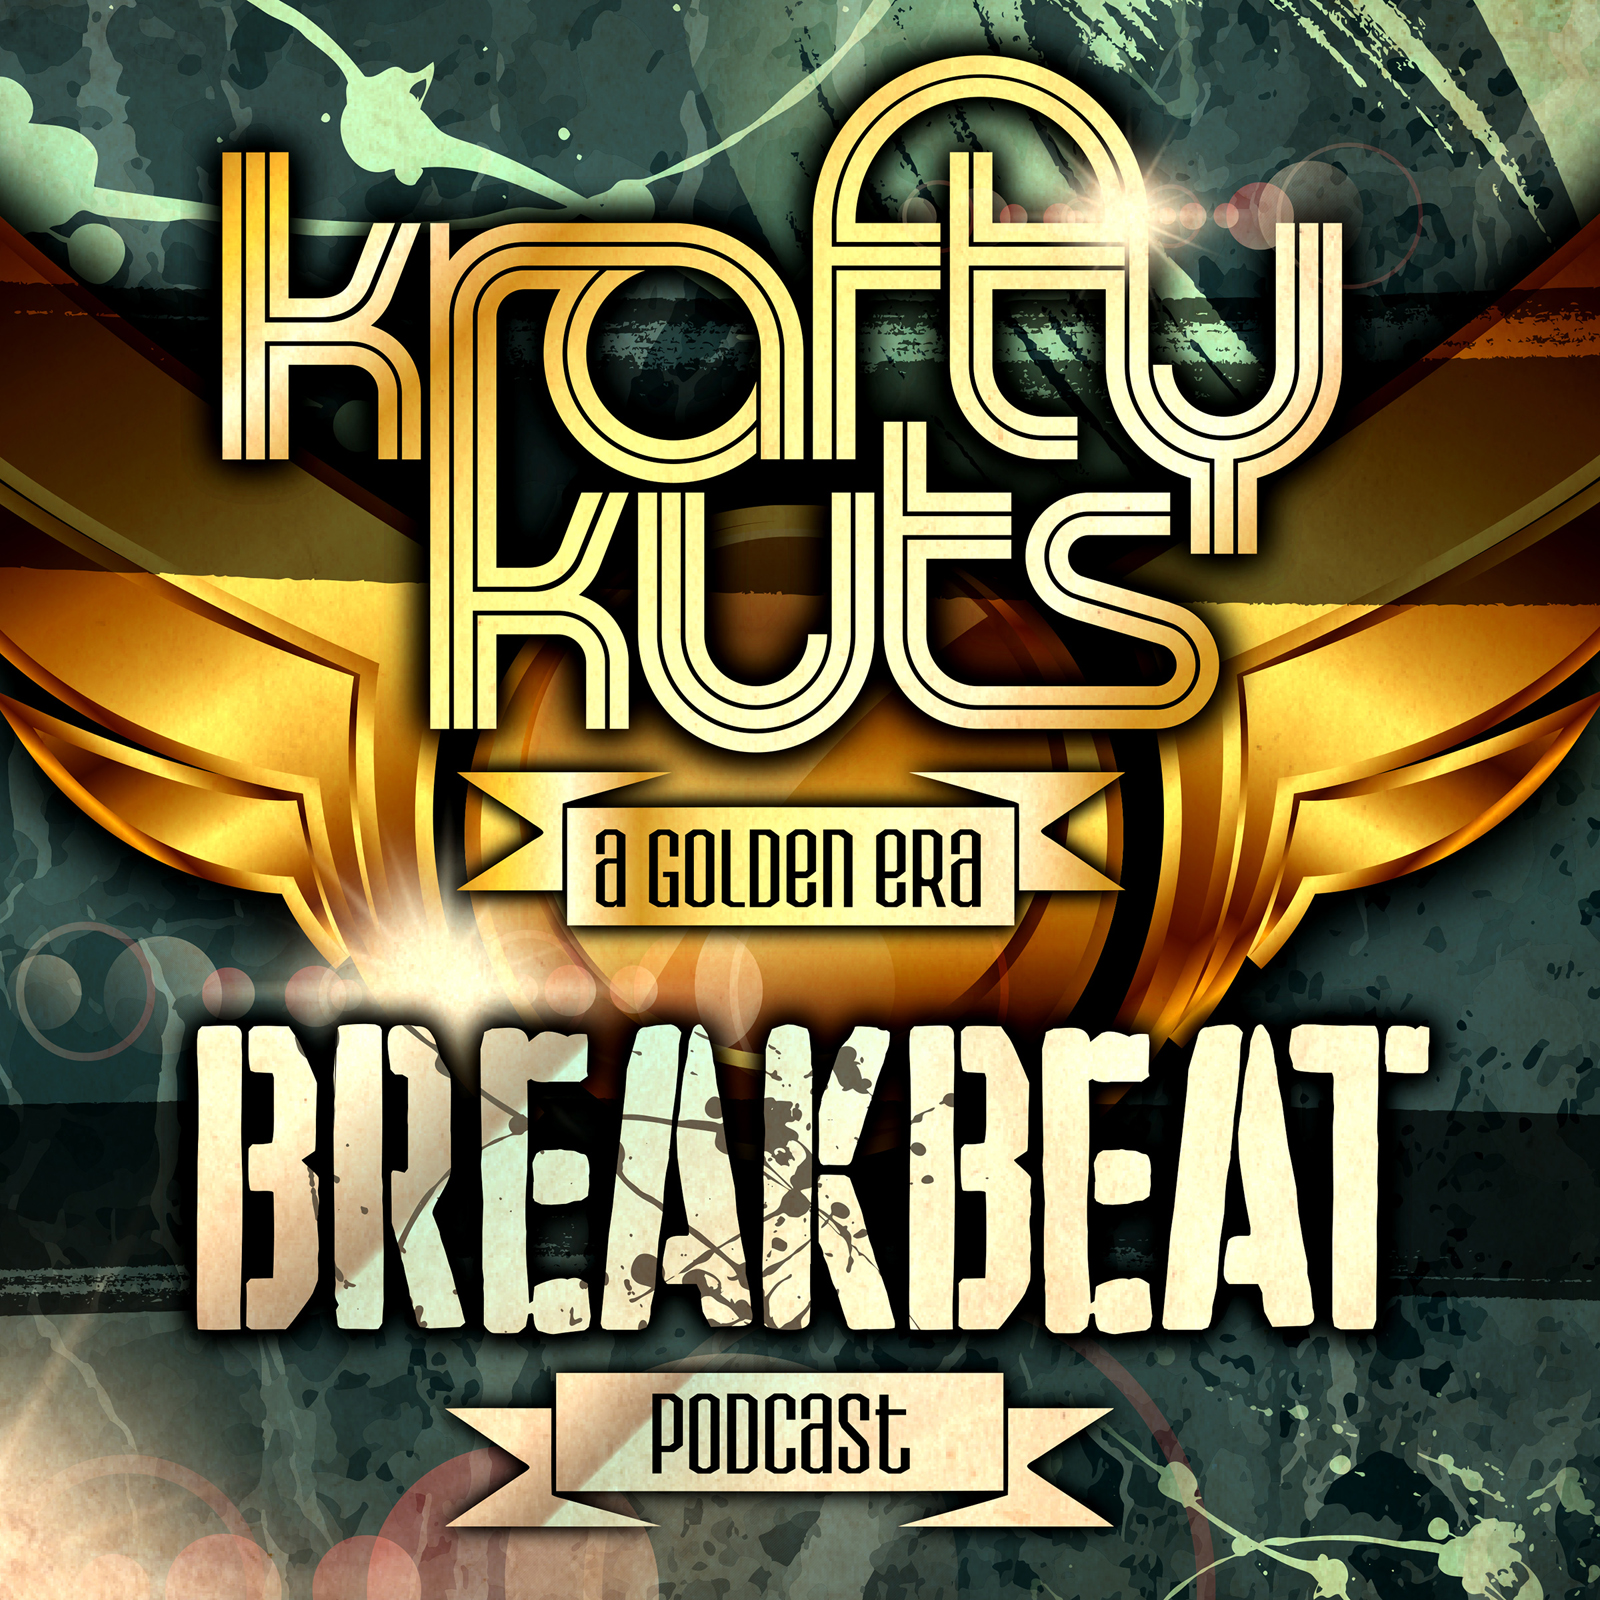 Krafty Kuts -- A Golden Era